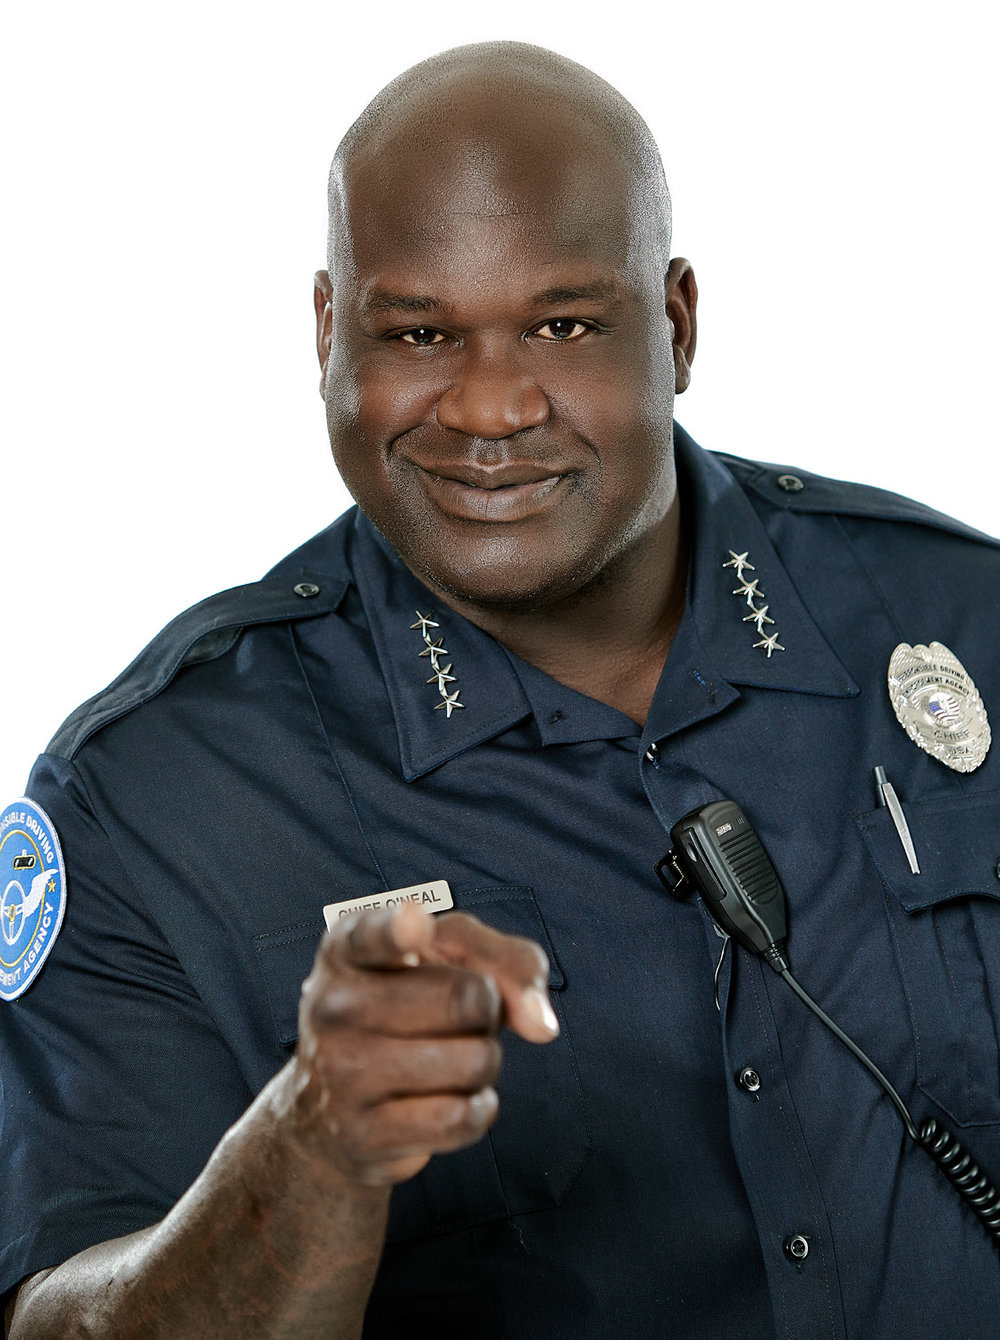 atlanta commercial photography atlanta advertising photographers atlanta celebrity photographer shaquille oneal hales photo006.jpg